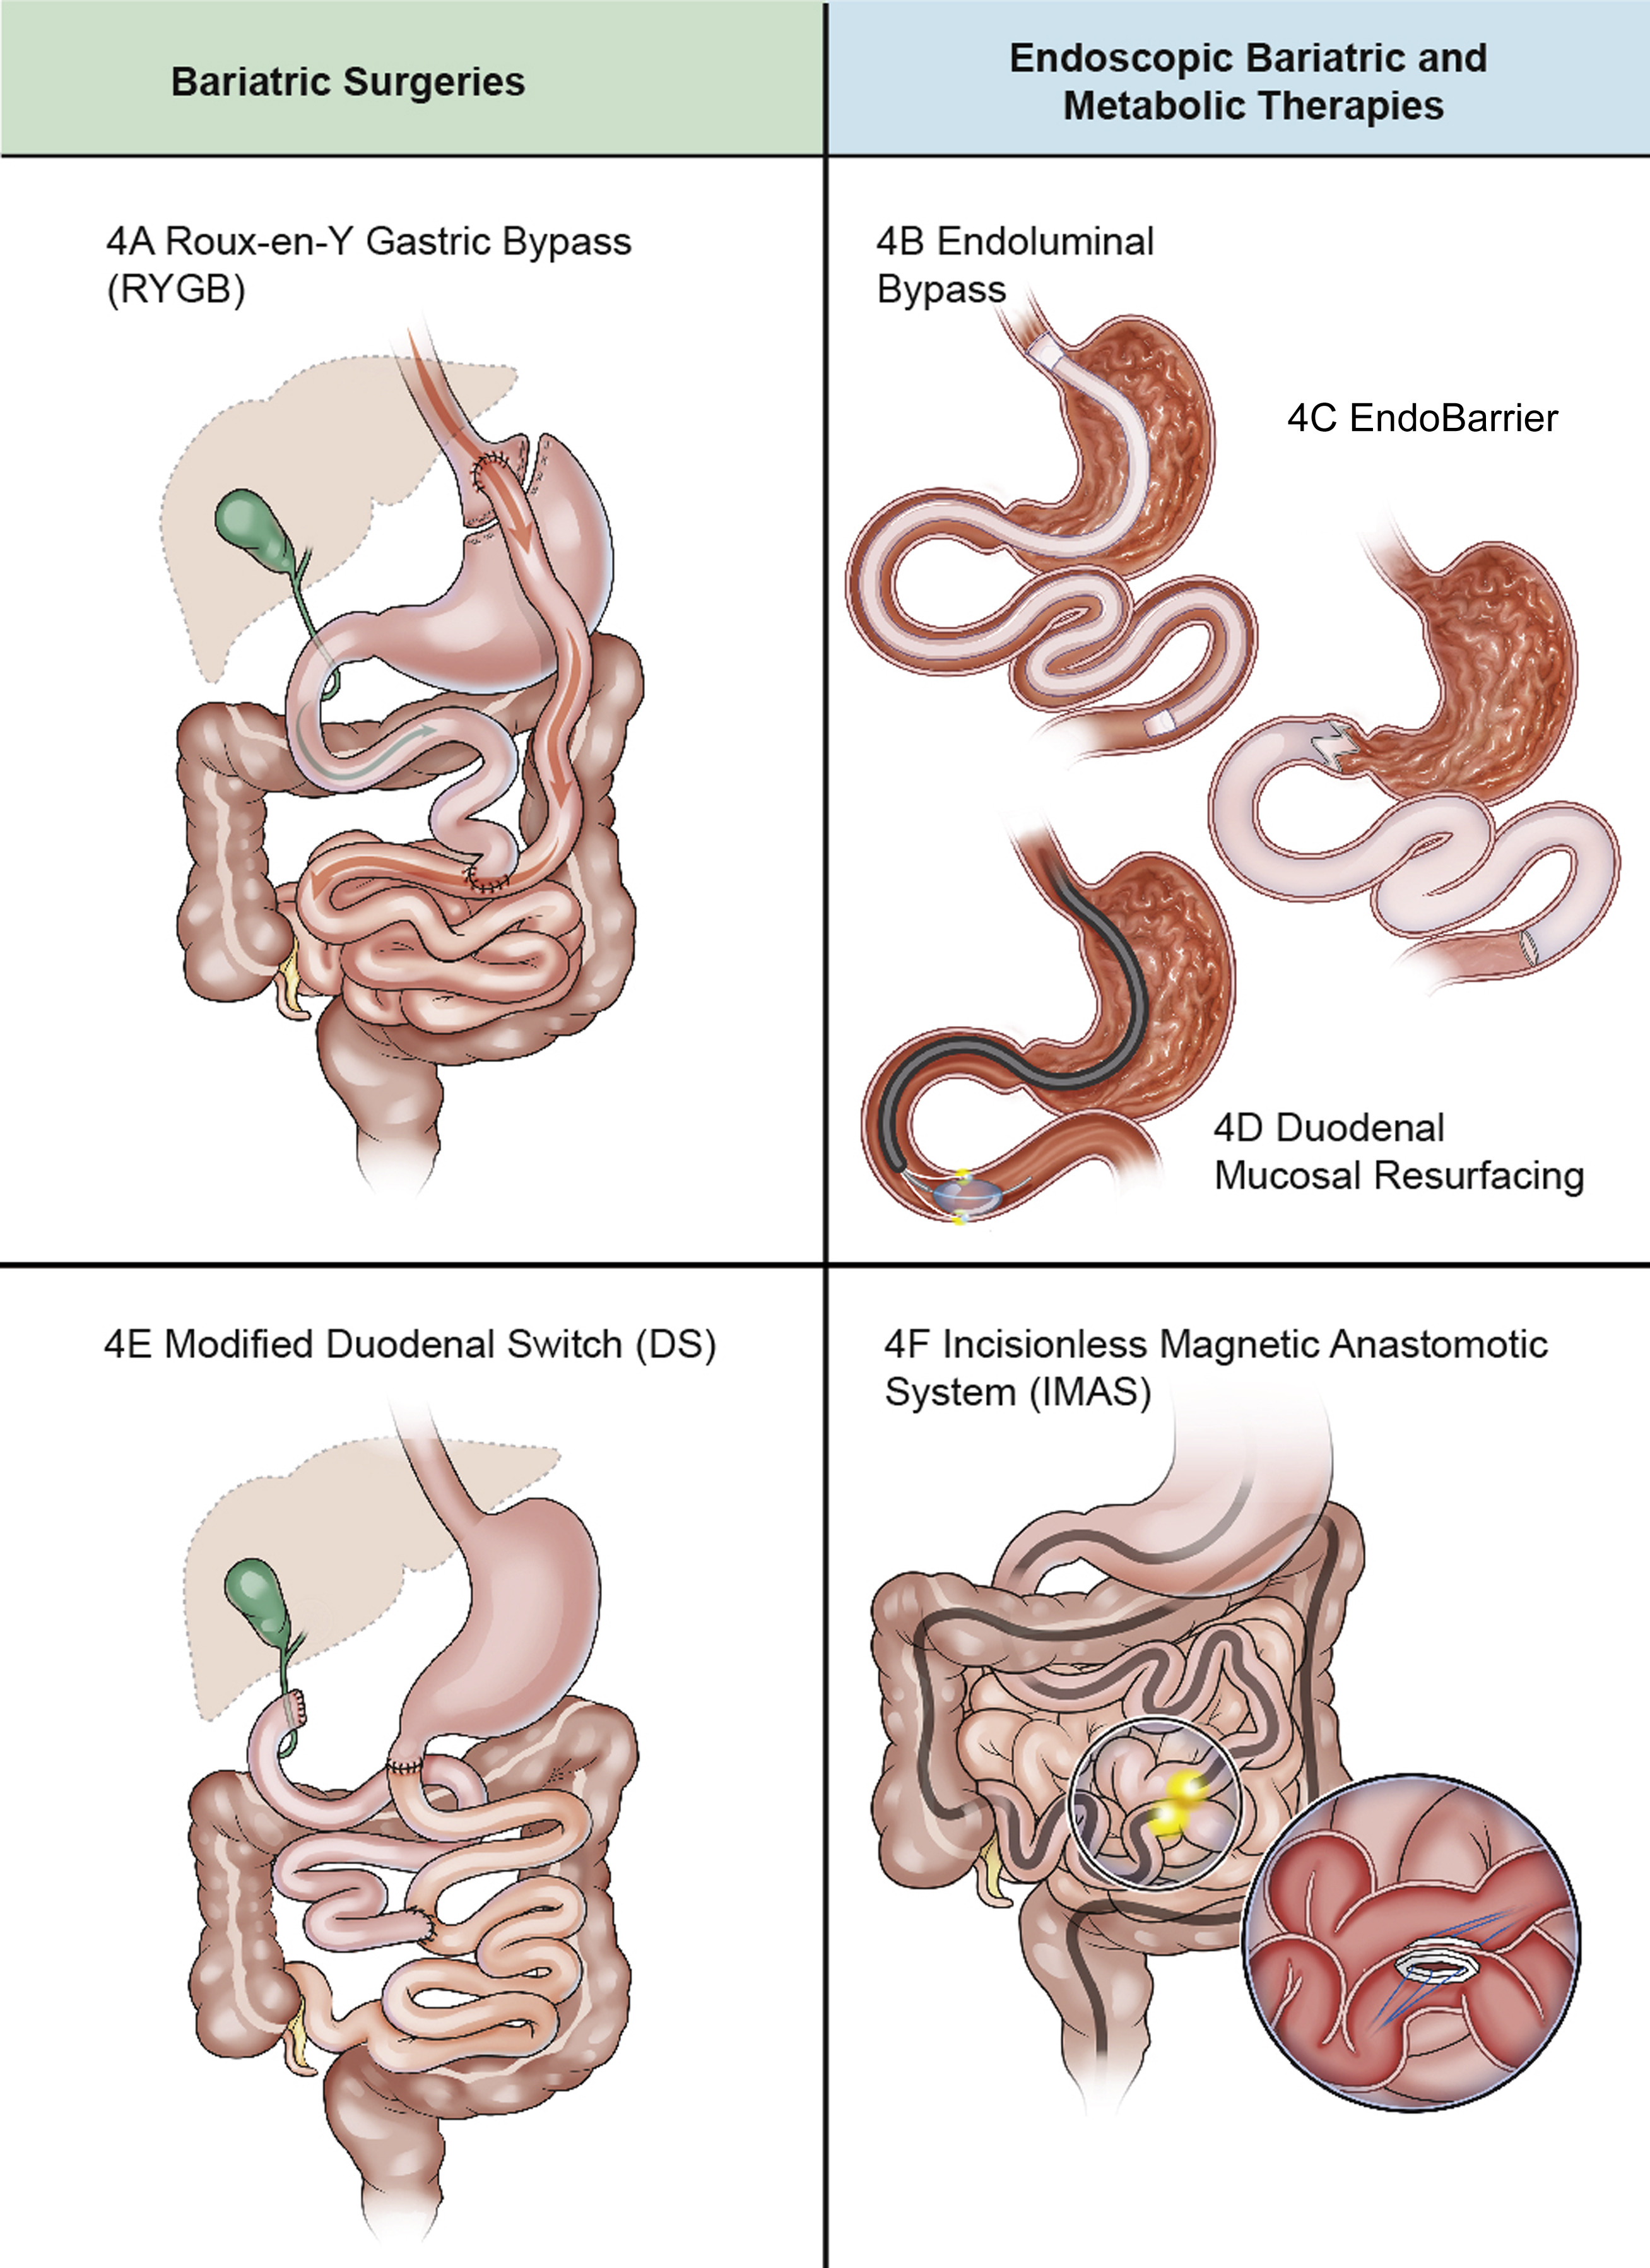 Endoscopic Bariatric And Metabolic Therapies Surgical Analogues And